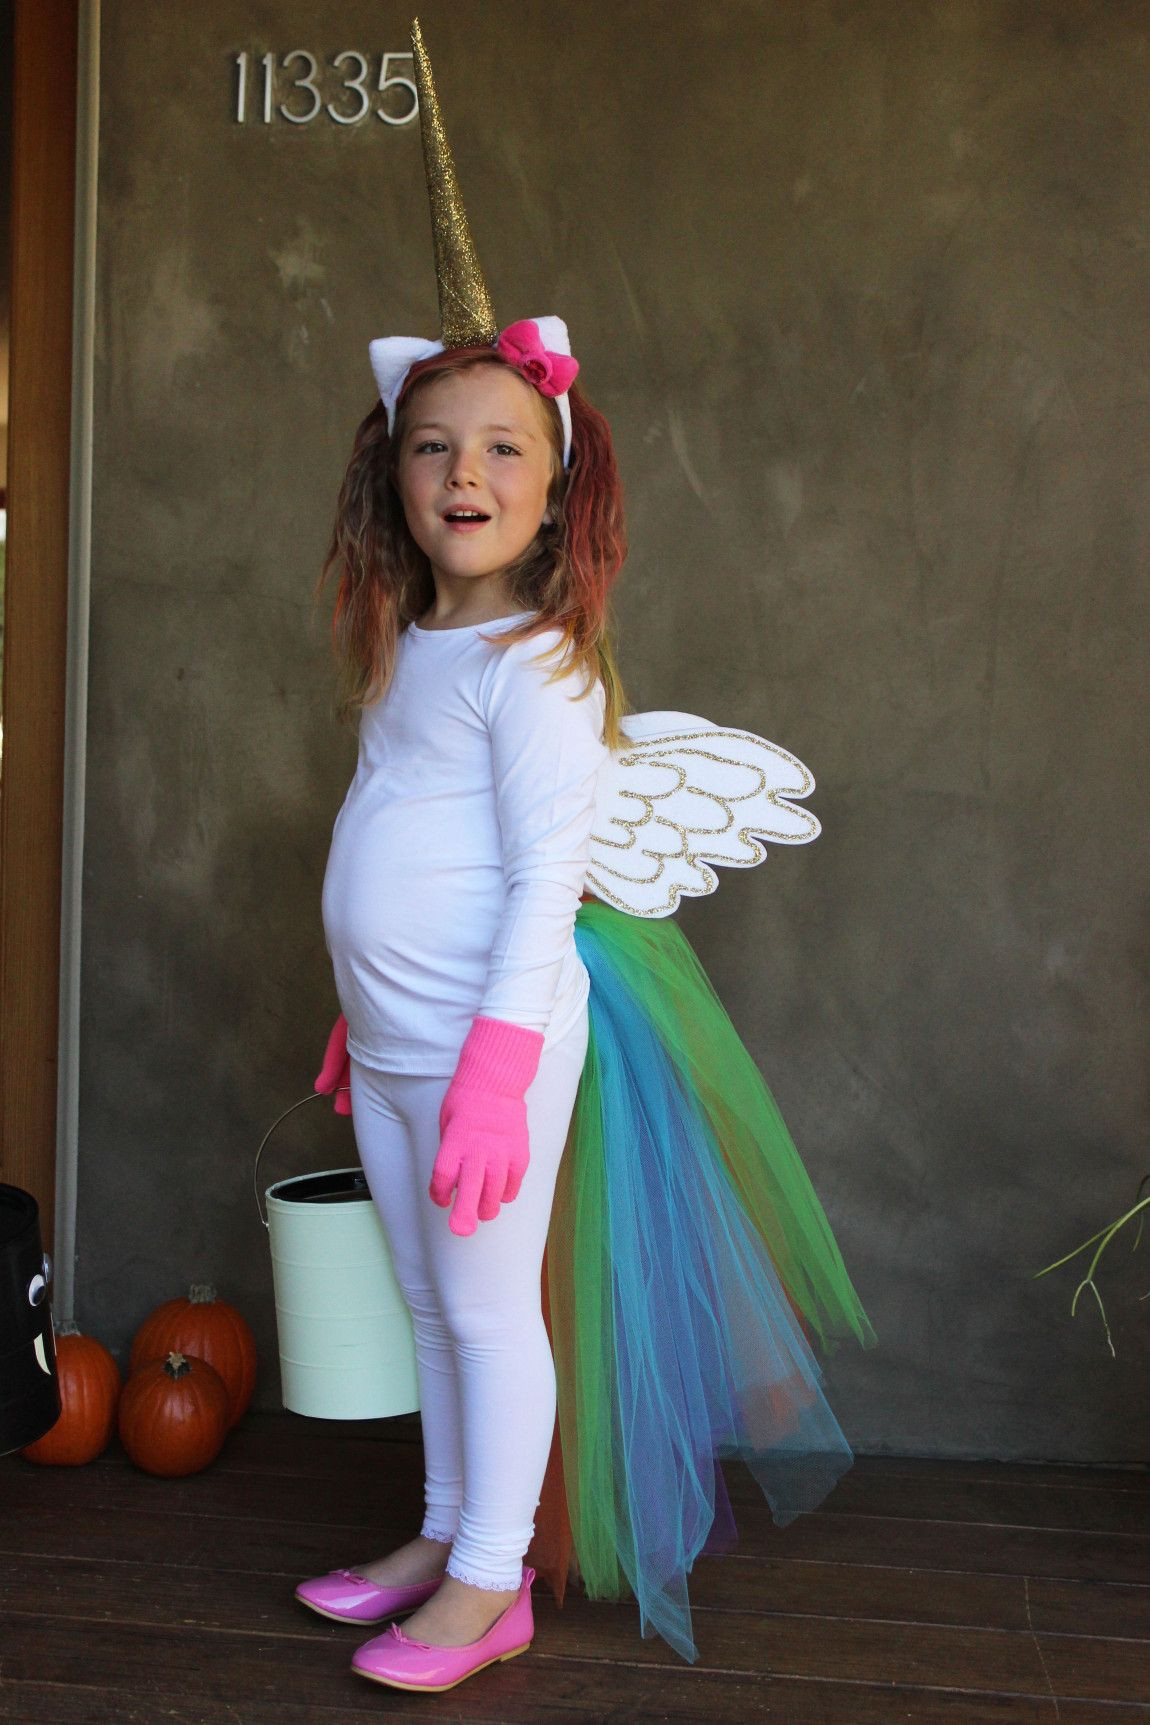 Best ideas about DIY Kids Halloween Costumes . Save or Pin 50 Best DIY Halloween Costumes For Kids in 2017 Now.